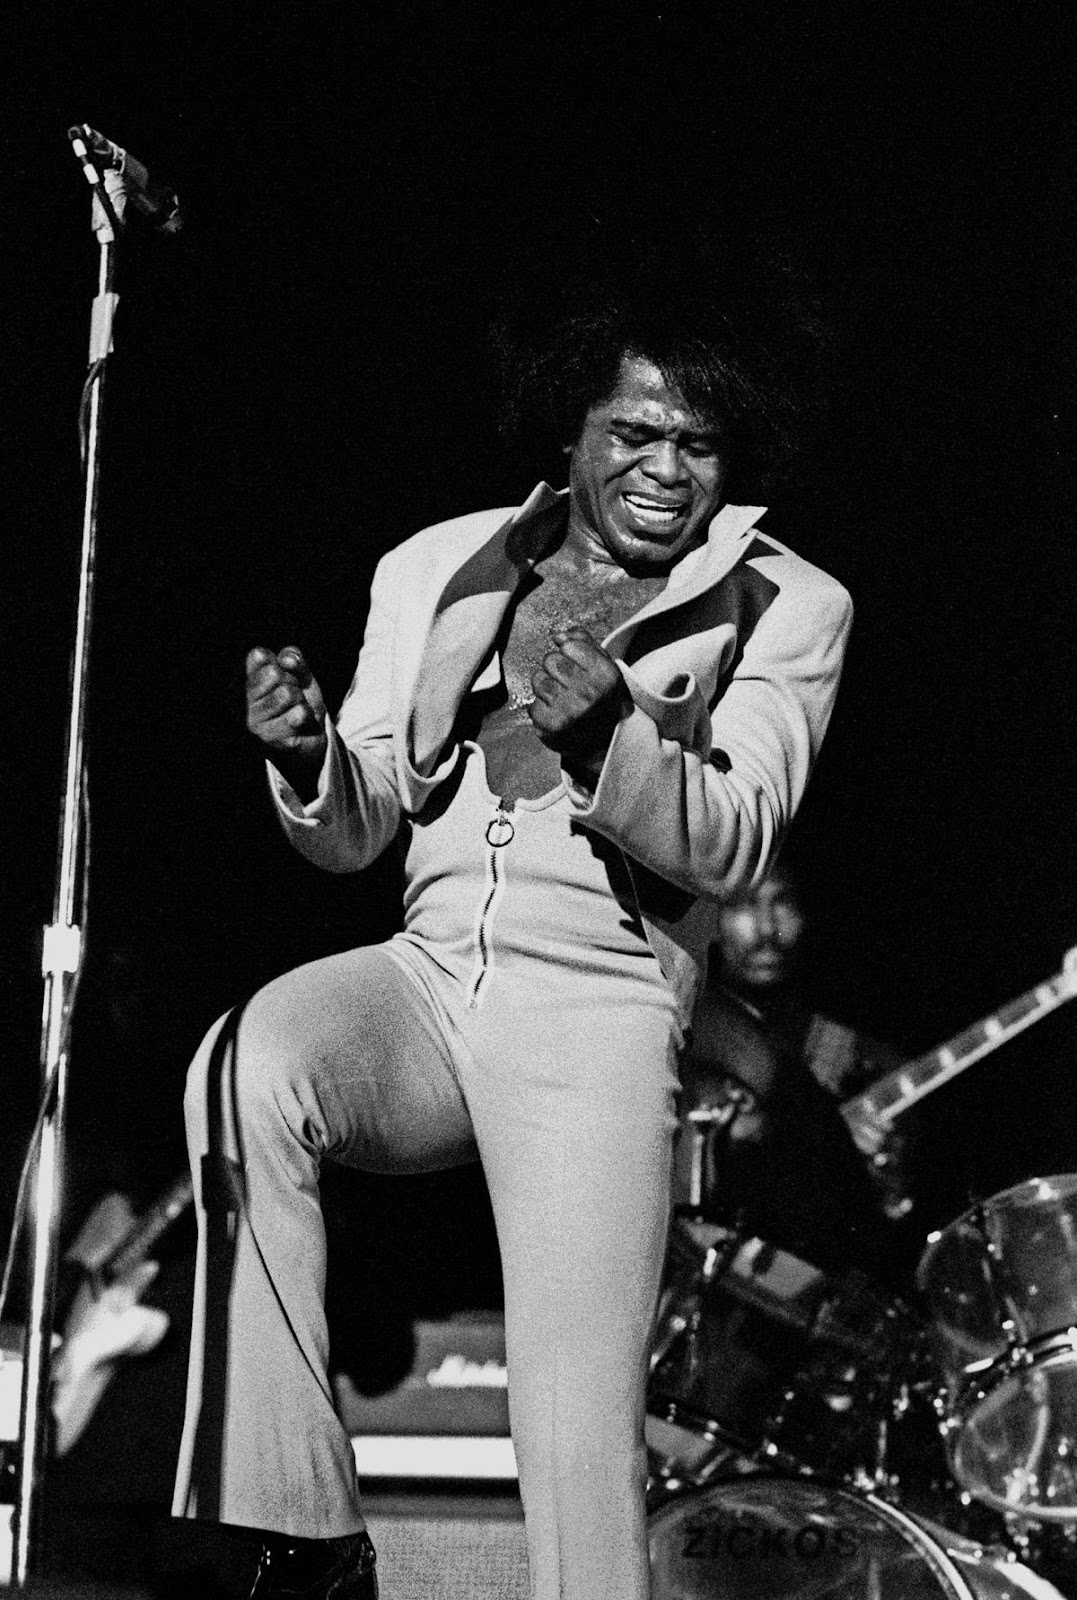 James Brown performando ao vivo em Hamburgo, Alemanha (1973)